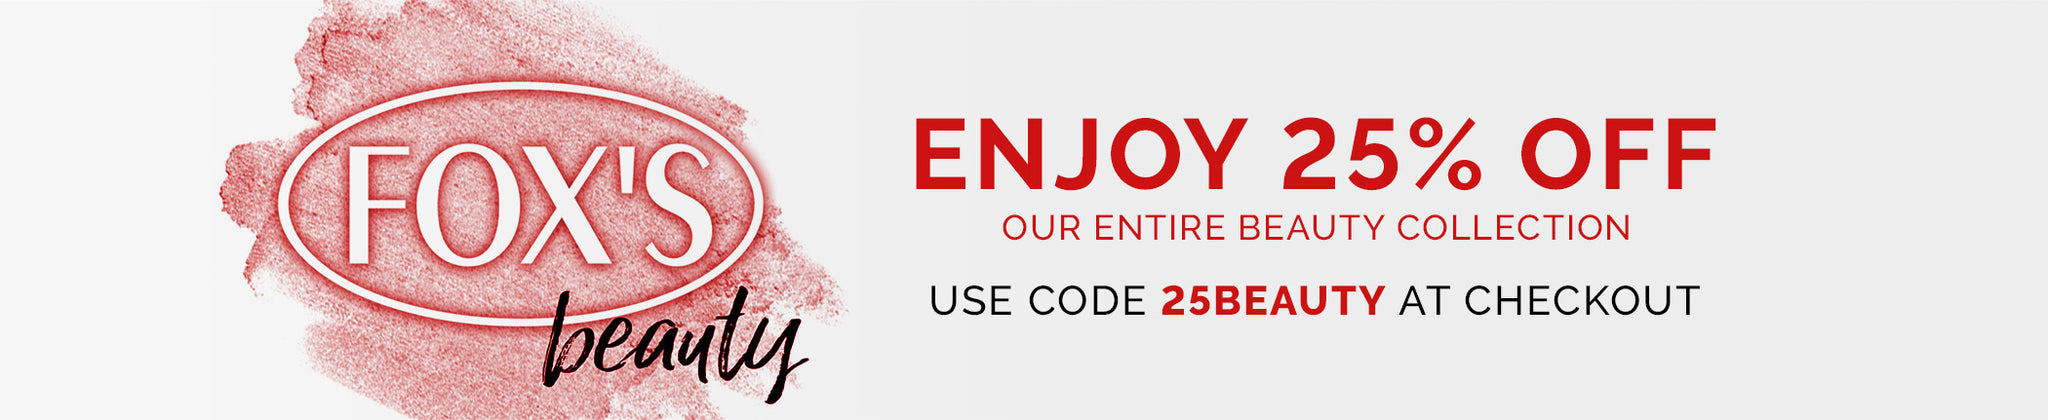 Enjoy 25% off beauty collection. Use code 25BEAUTY at checkout